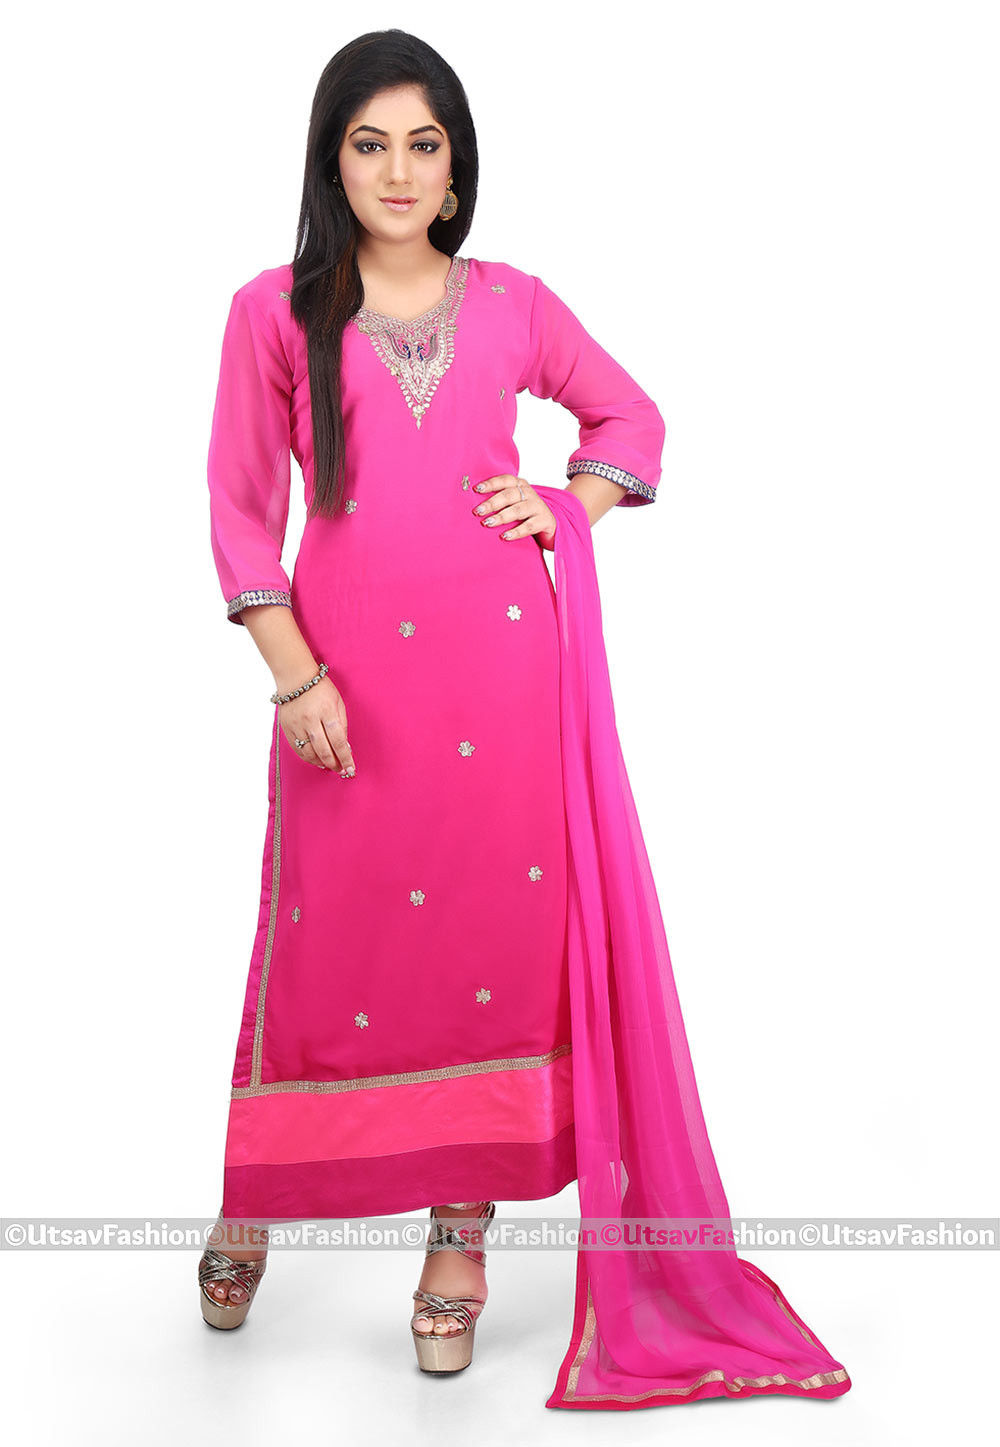 Hand Embroidered Georgette Straight Suit in Fuchsia Ombre